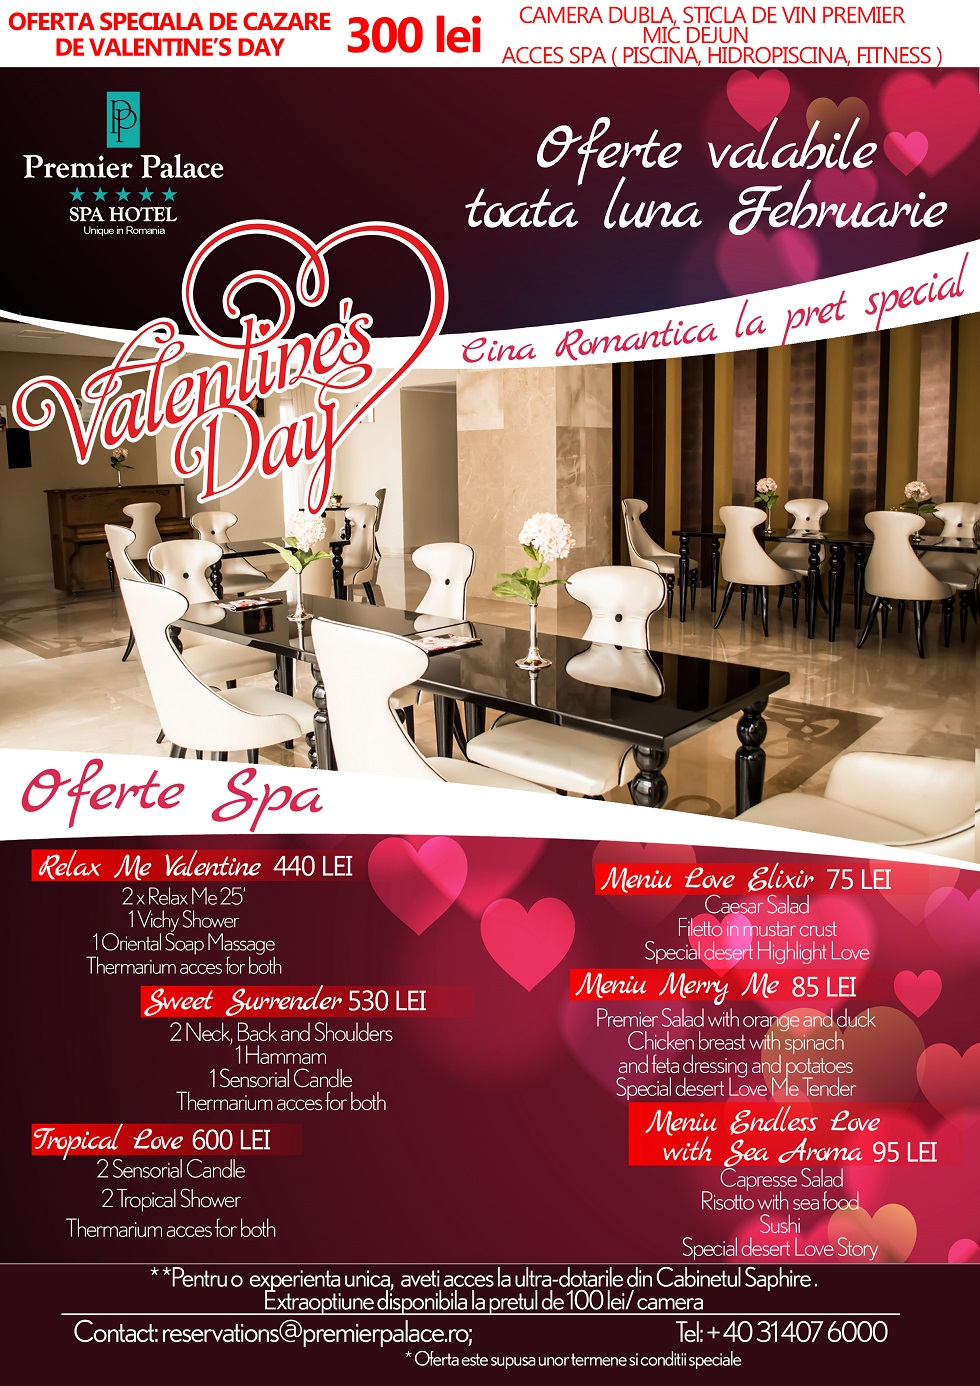 romantism de 5 de valentine s day la premier palace spa hotel comunicate de presa. Black Bedroom Furniture Sets. Home Design Ideas